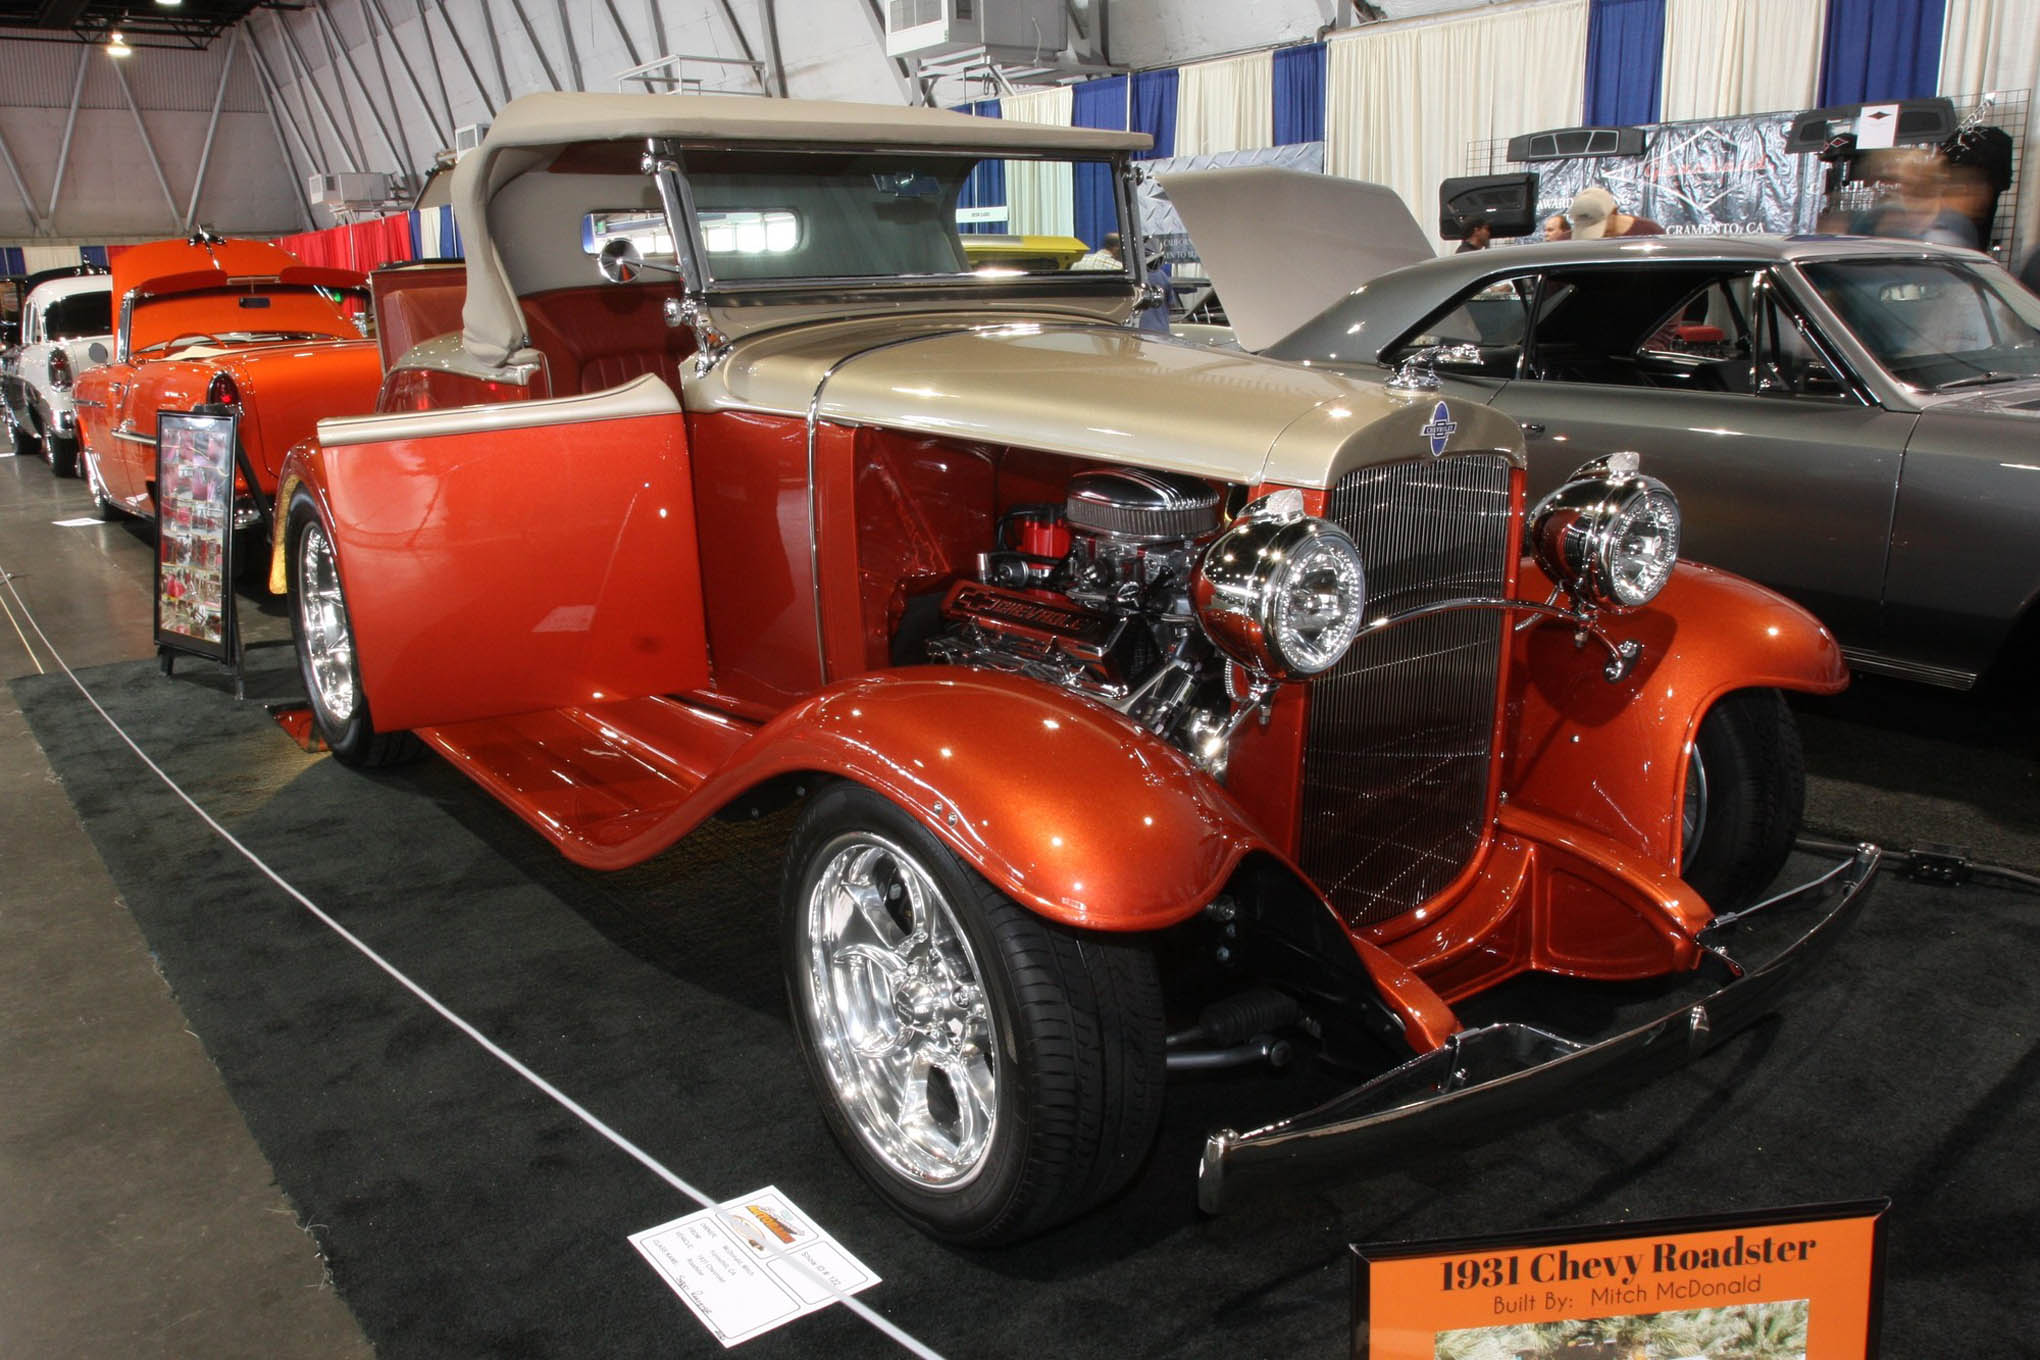 These early '30s Chevys aren't very common, and Mitch and Pam McDonald's copper and champagne steel-bodied roadster is especially eye catching. With a 465hp 383 stroker, Tremec five-speed, and 9-inch Posi rearend, it's a bonafide hot rod.